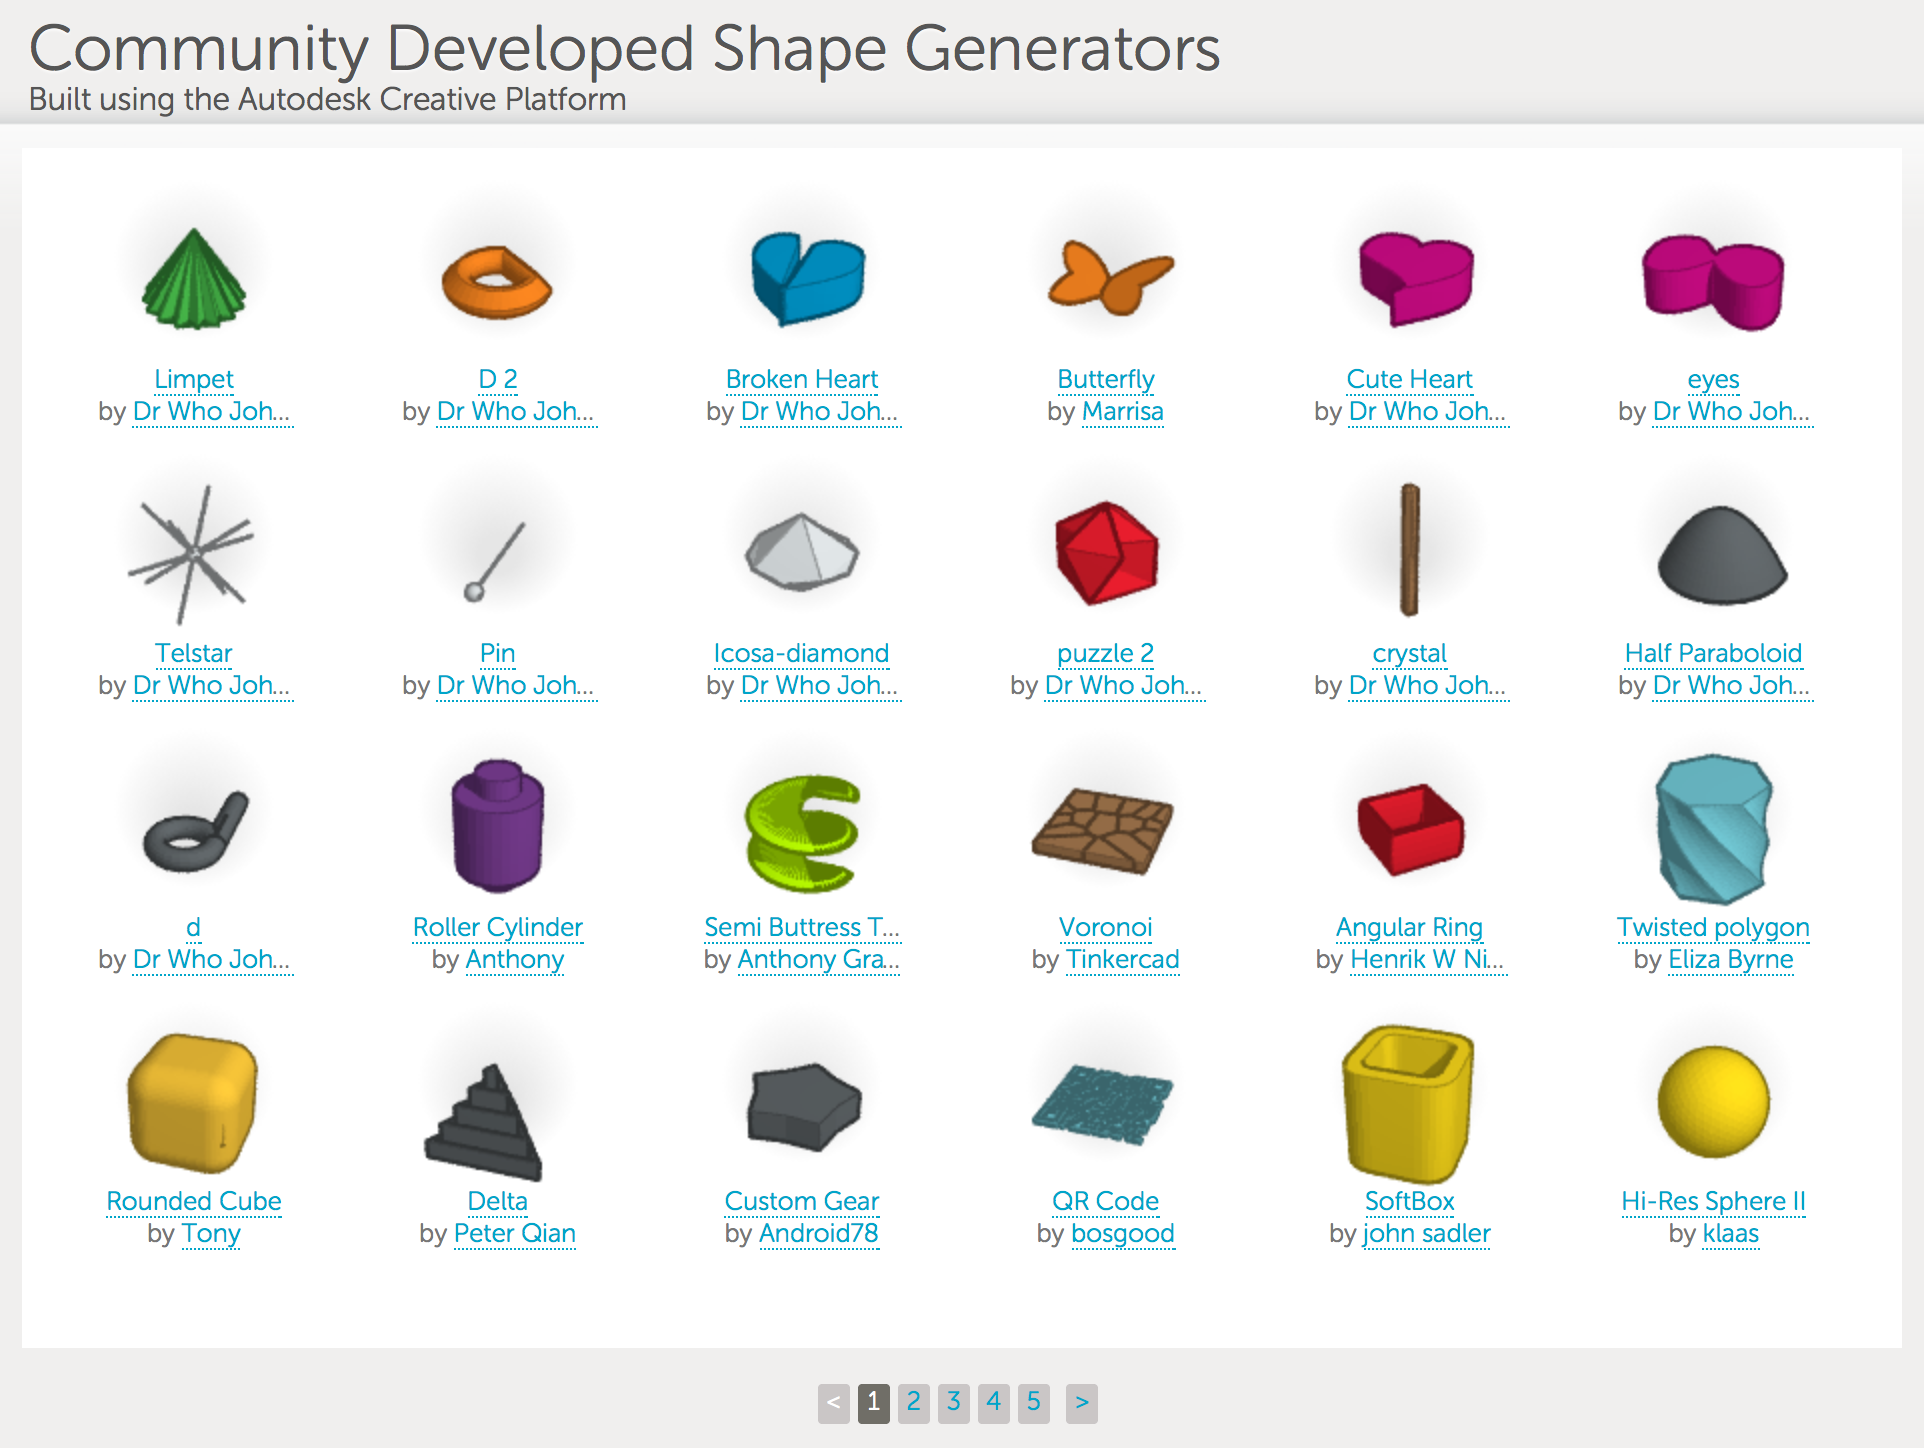 tinkercad-community-shape-generators